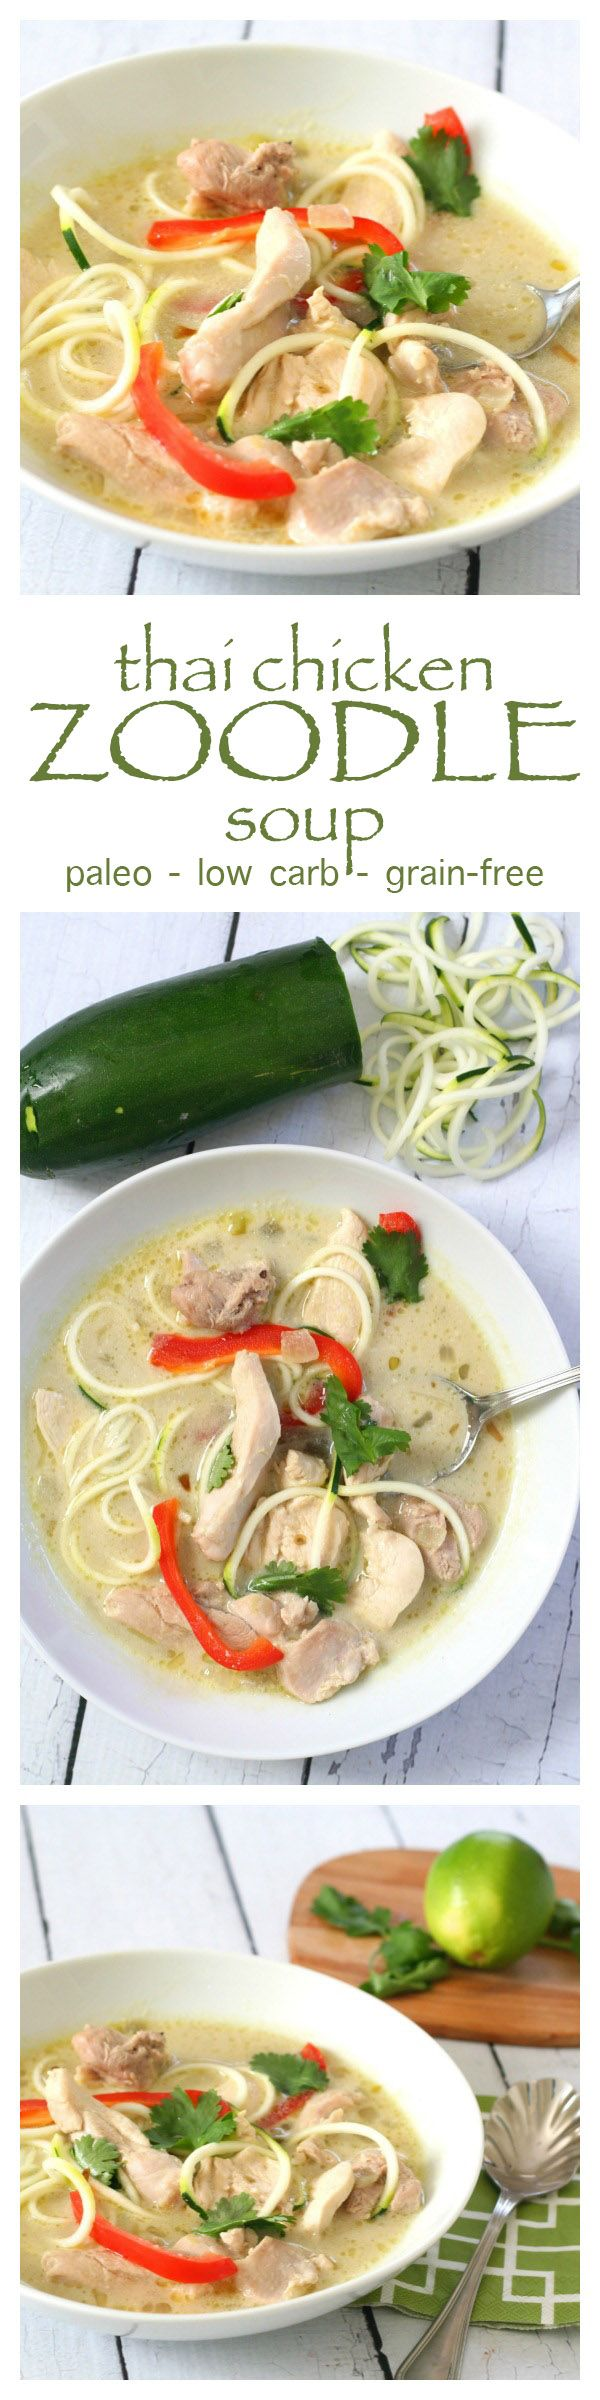 Paleo Thai Chicken Zoodle Soup - warm up with this flavourful. healthy meal!